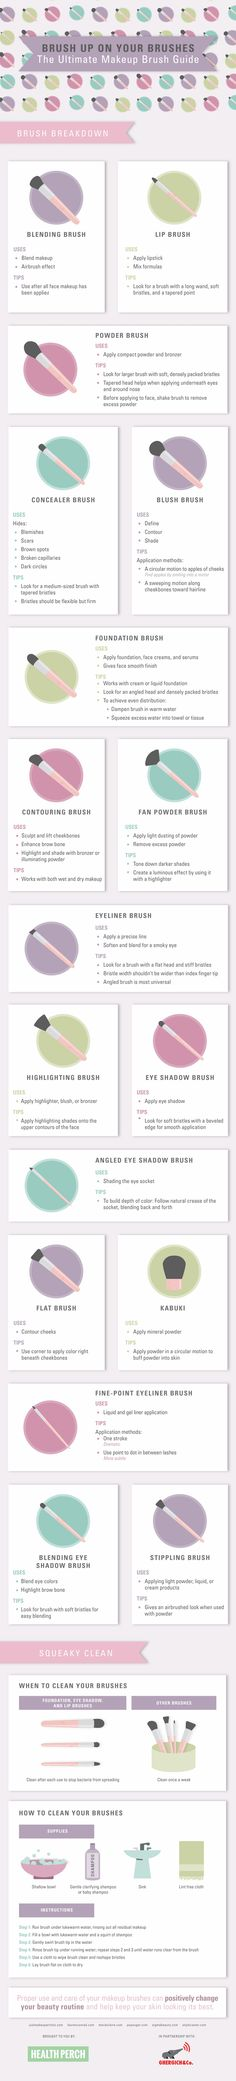 http://beforbeauty.com/clean-makeup-brushes/